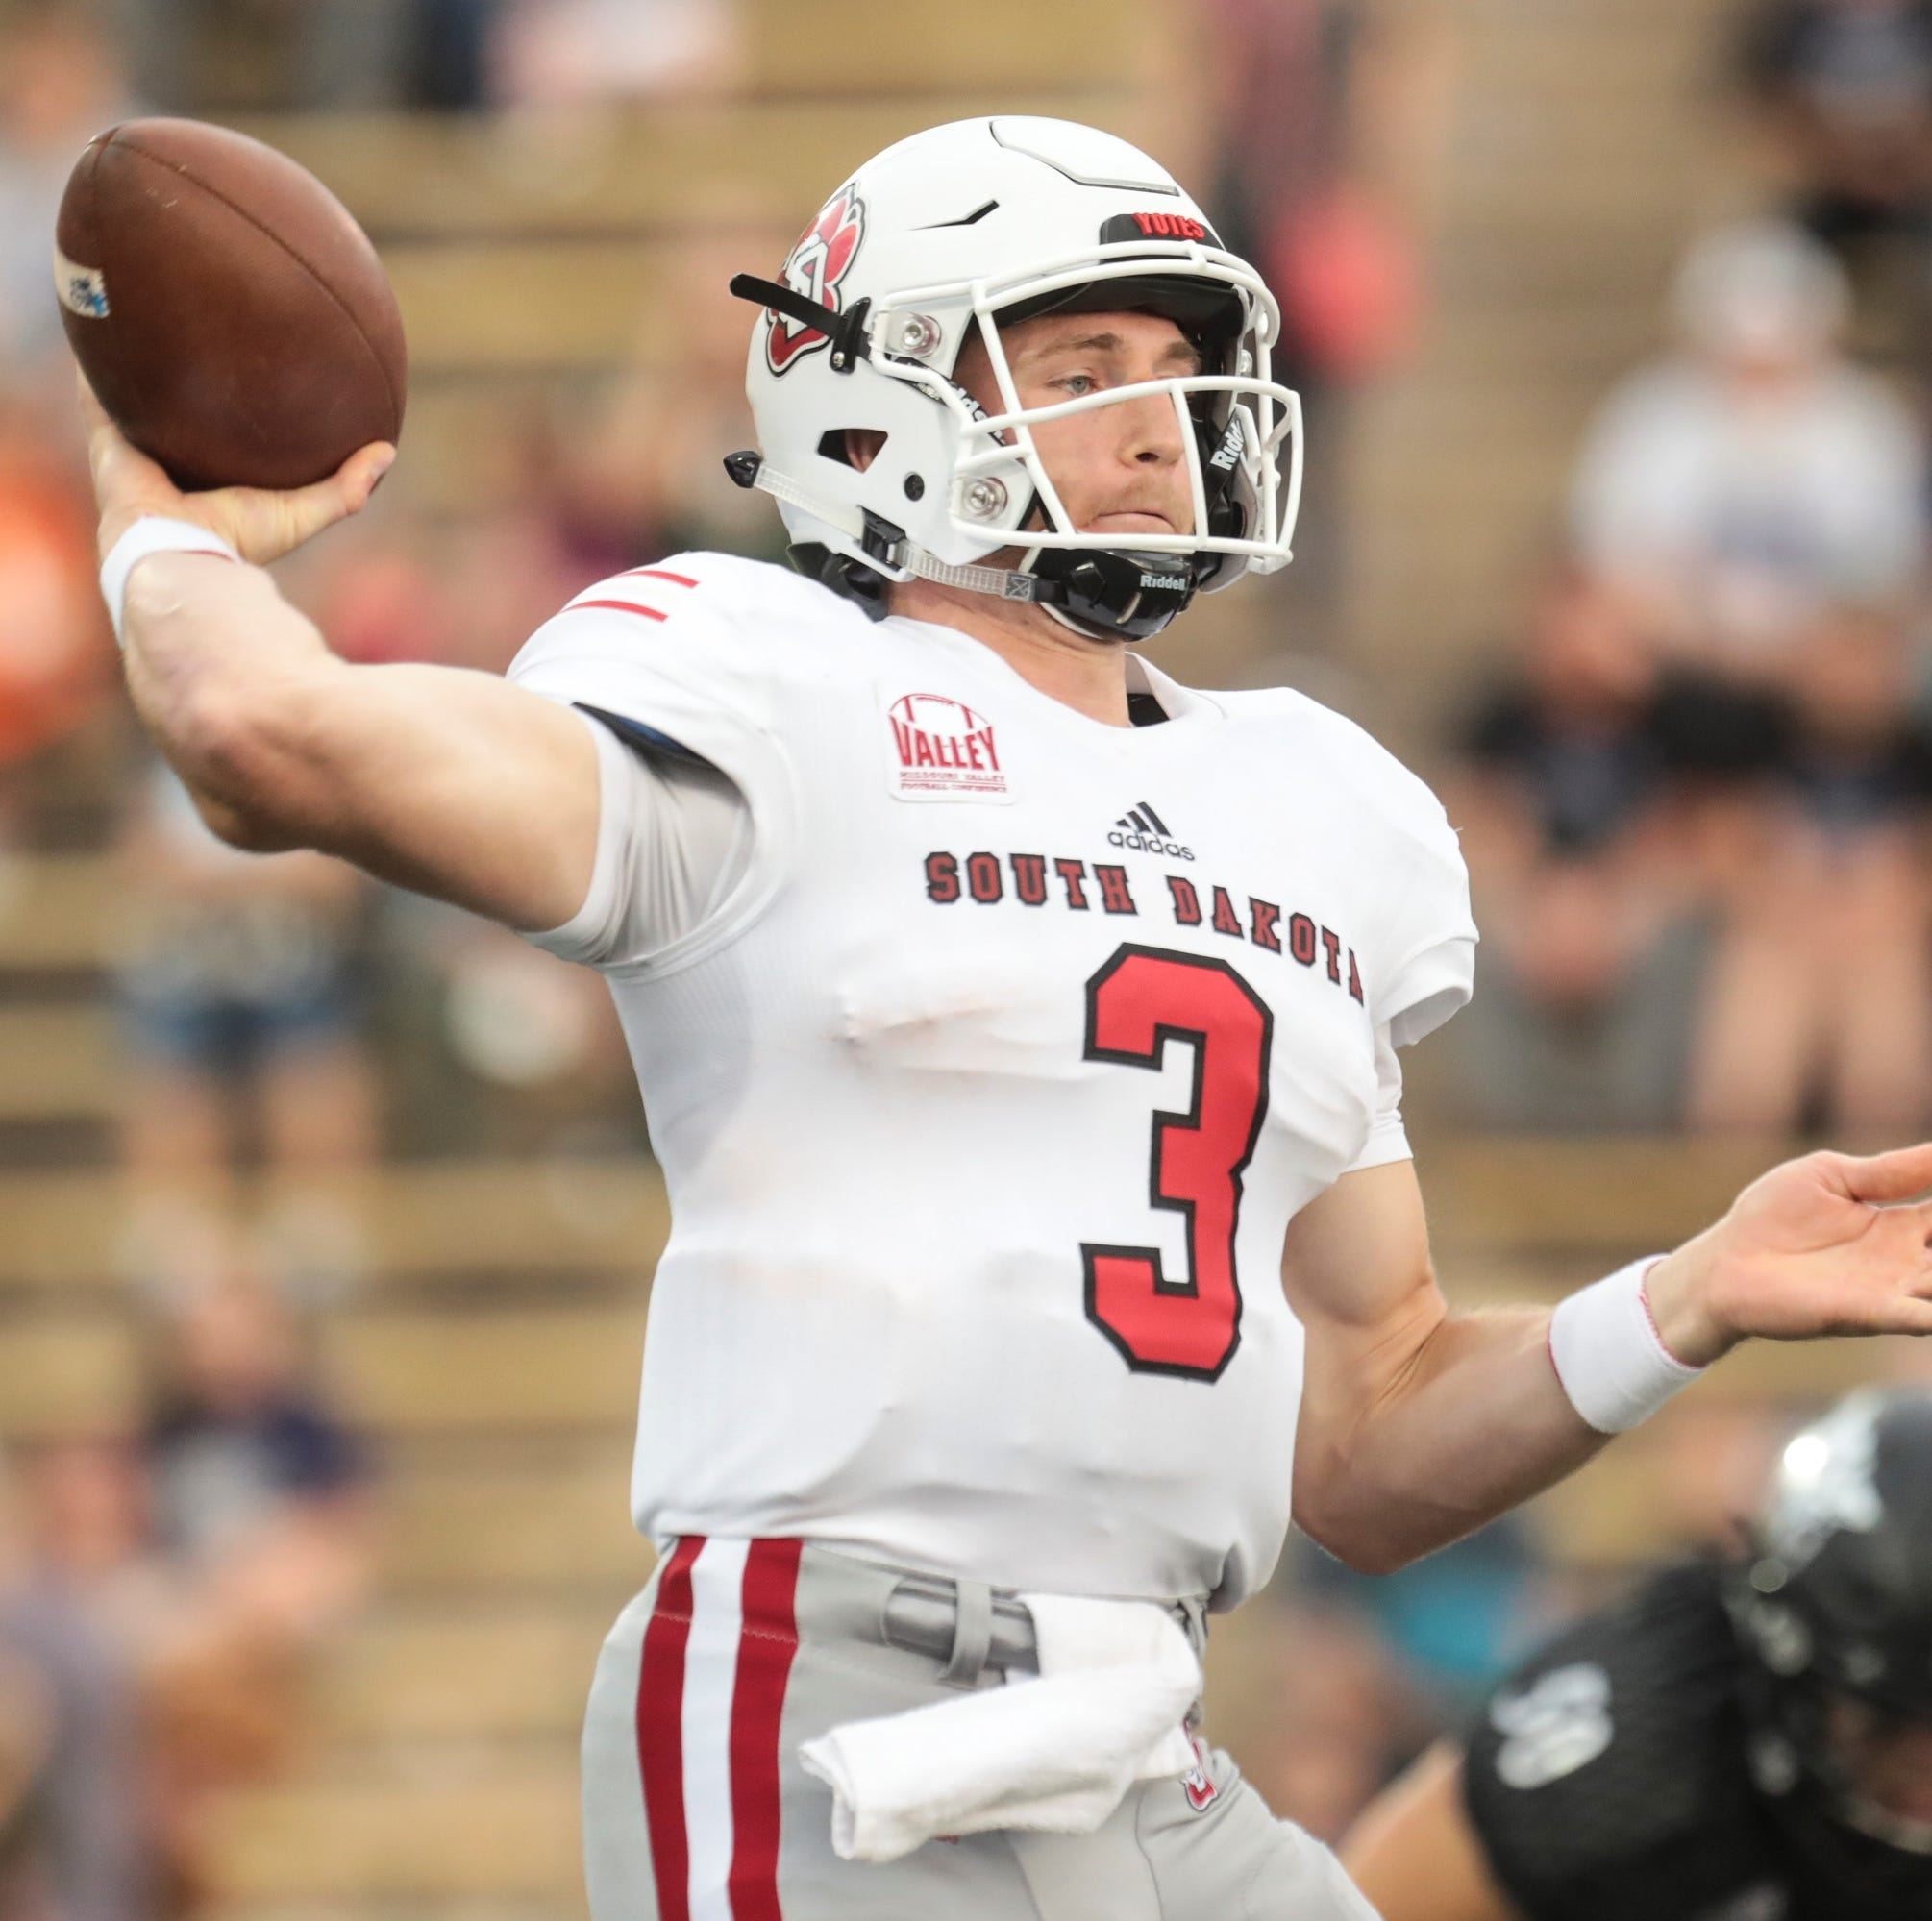 South Dakota offense will get a lot of attention the next two weeks